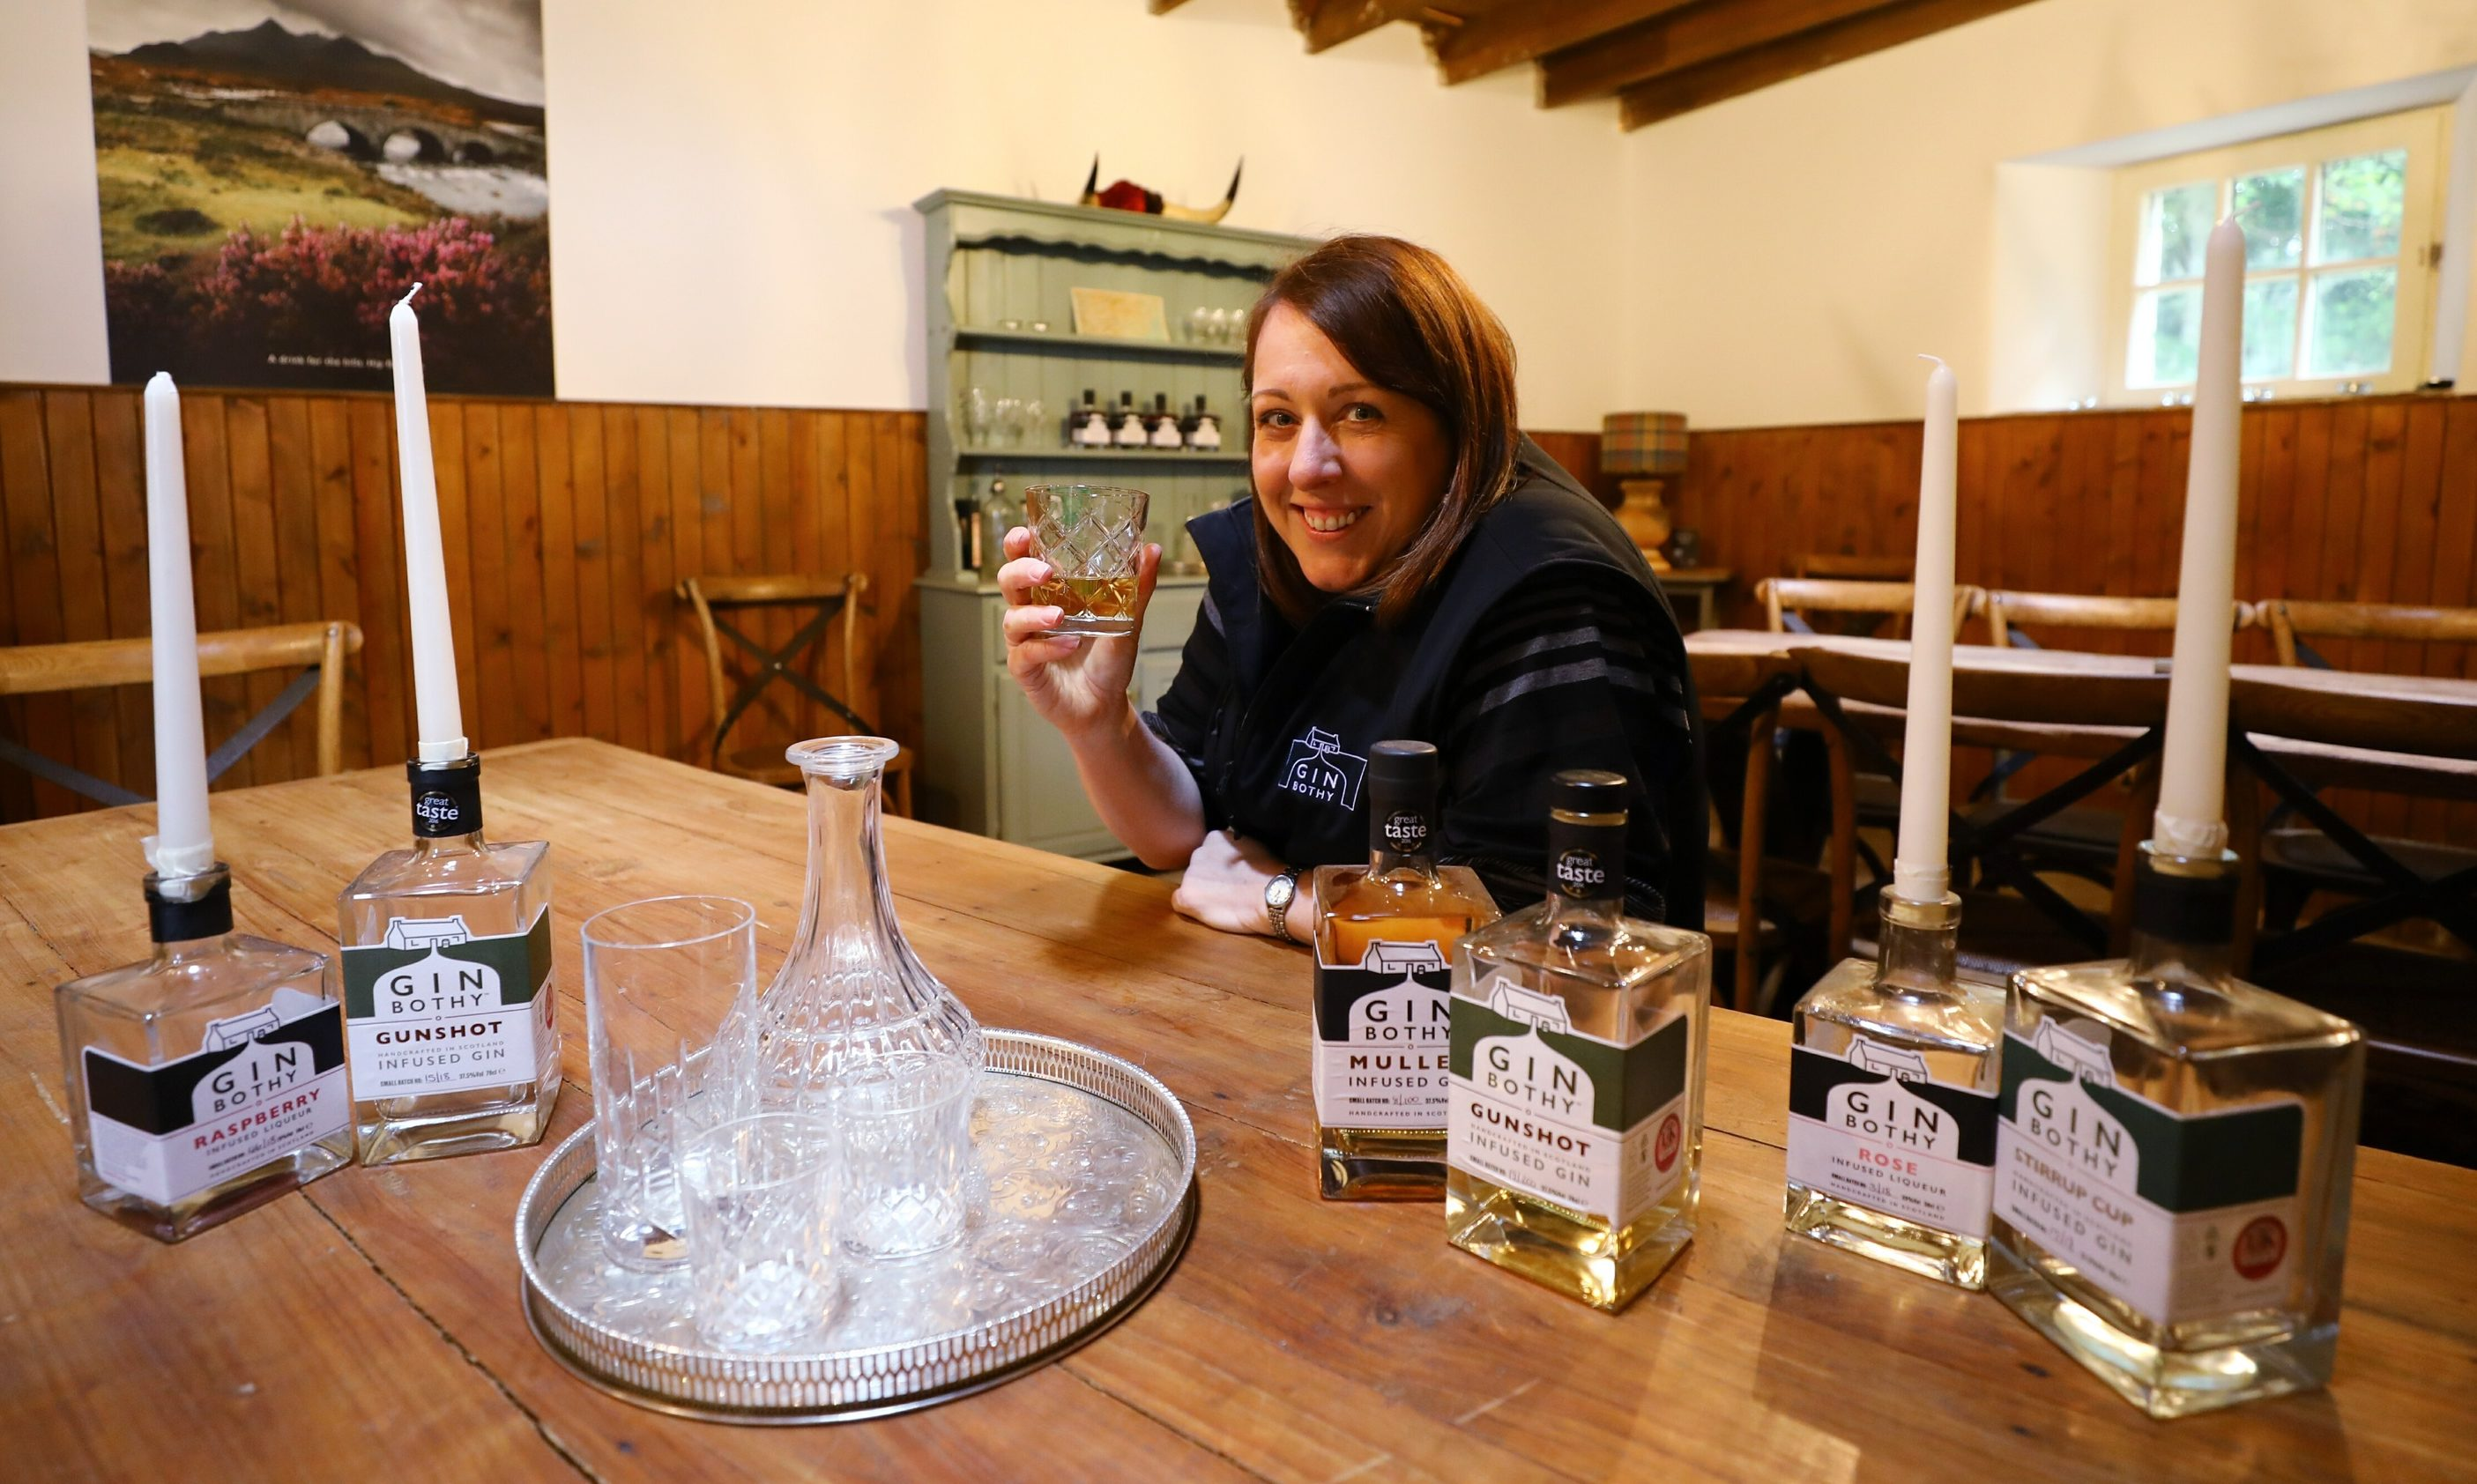 Kim Cameron, owner of the Gin Bothy.